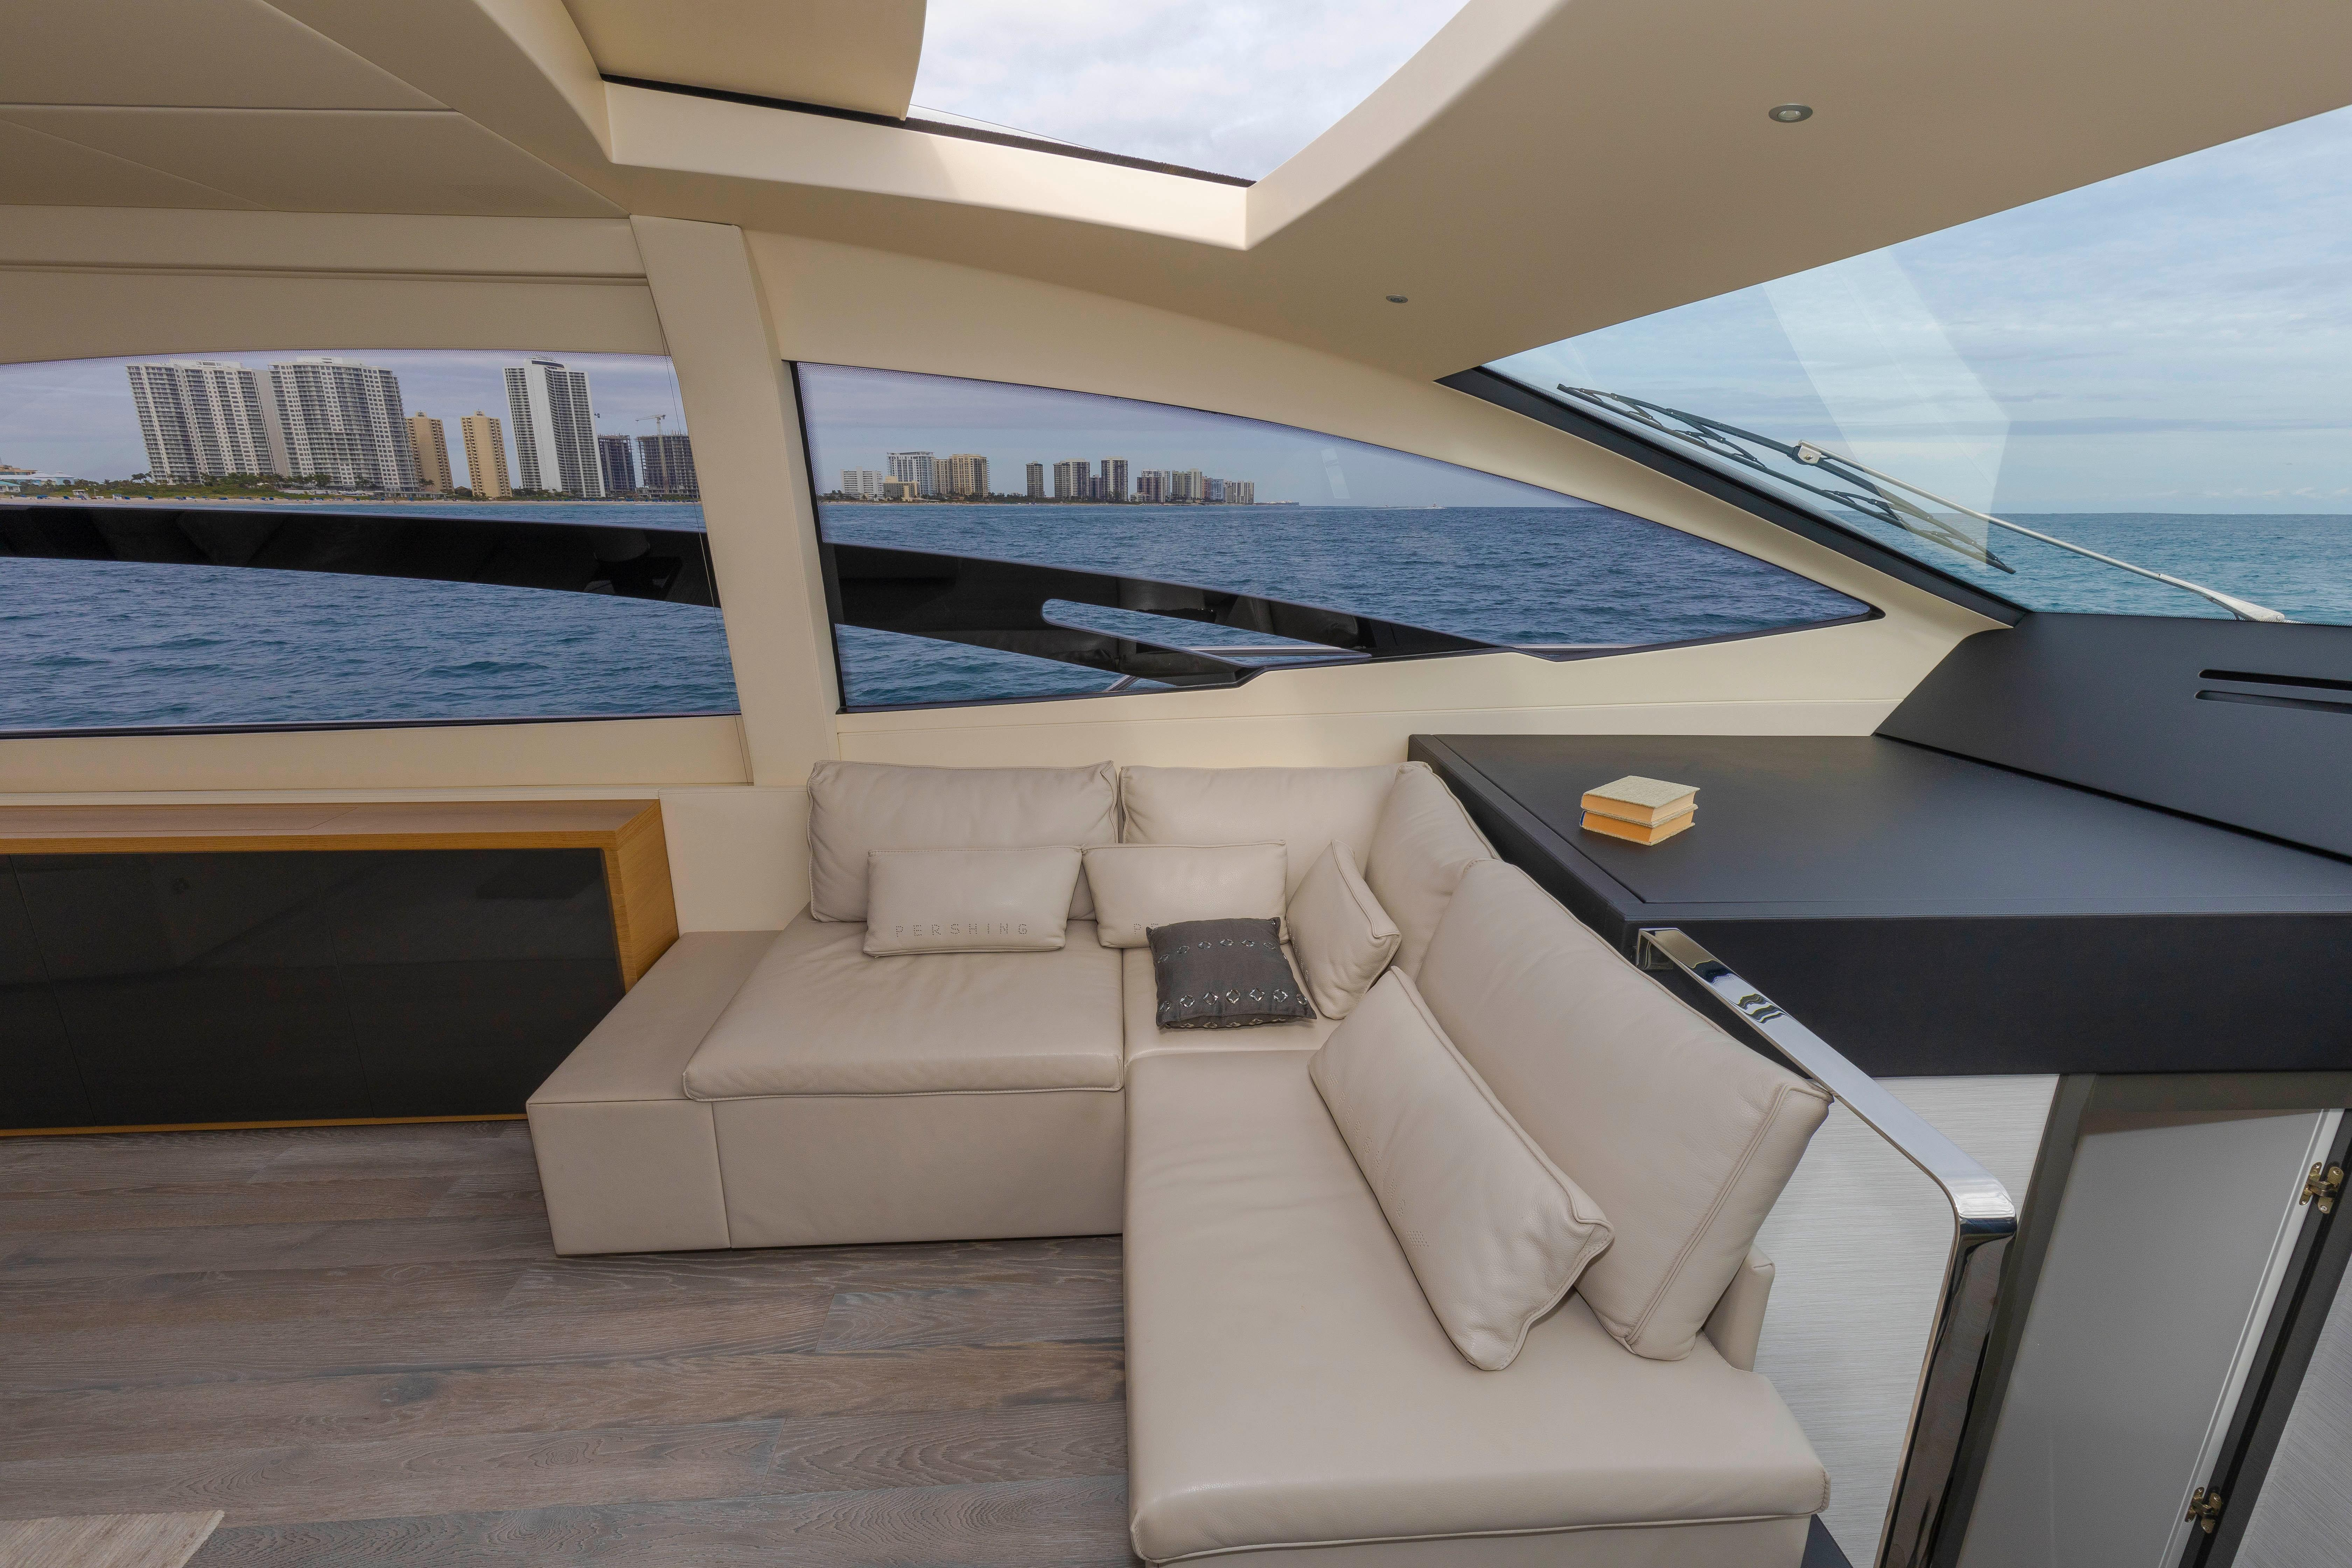 2016 Pershing 70 - Salon